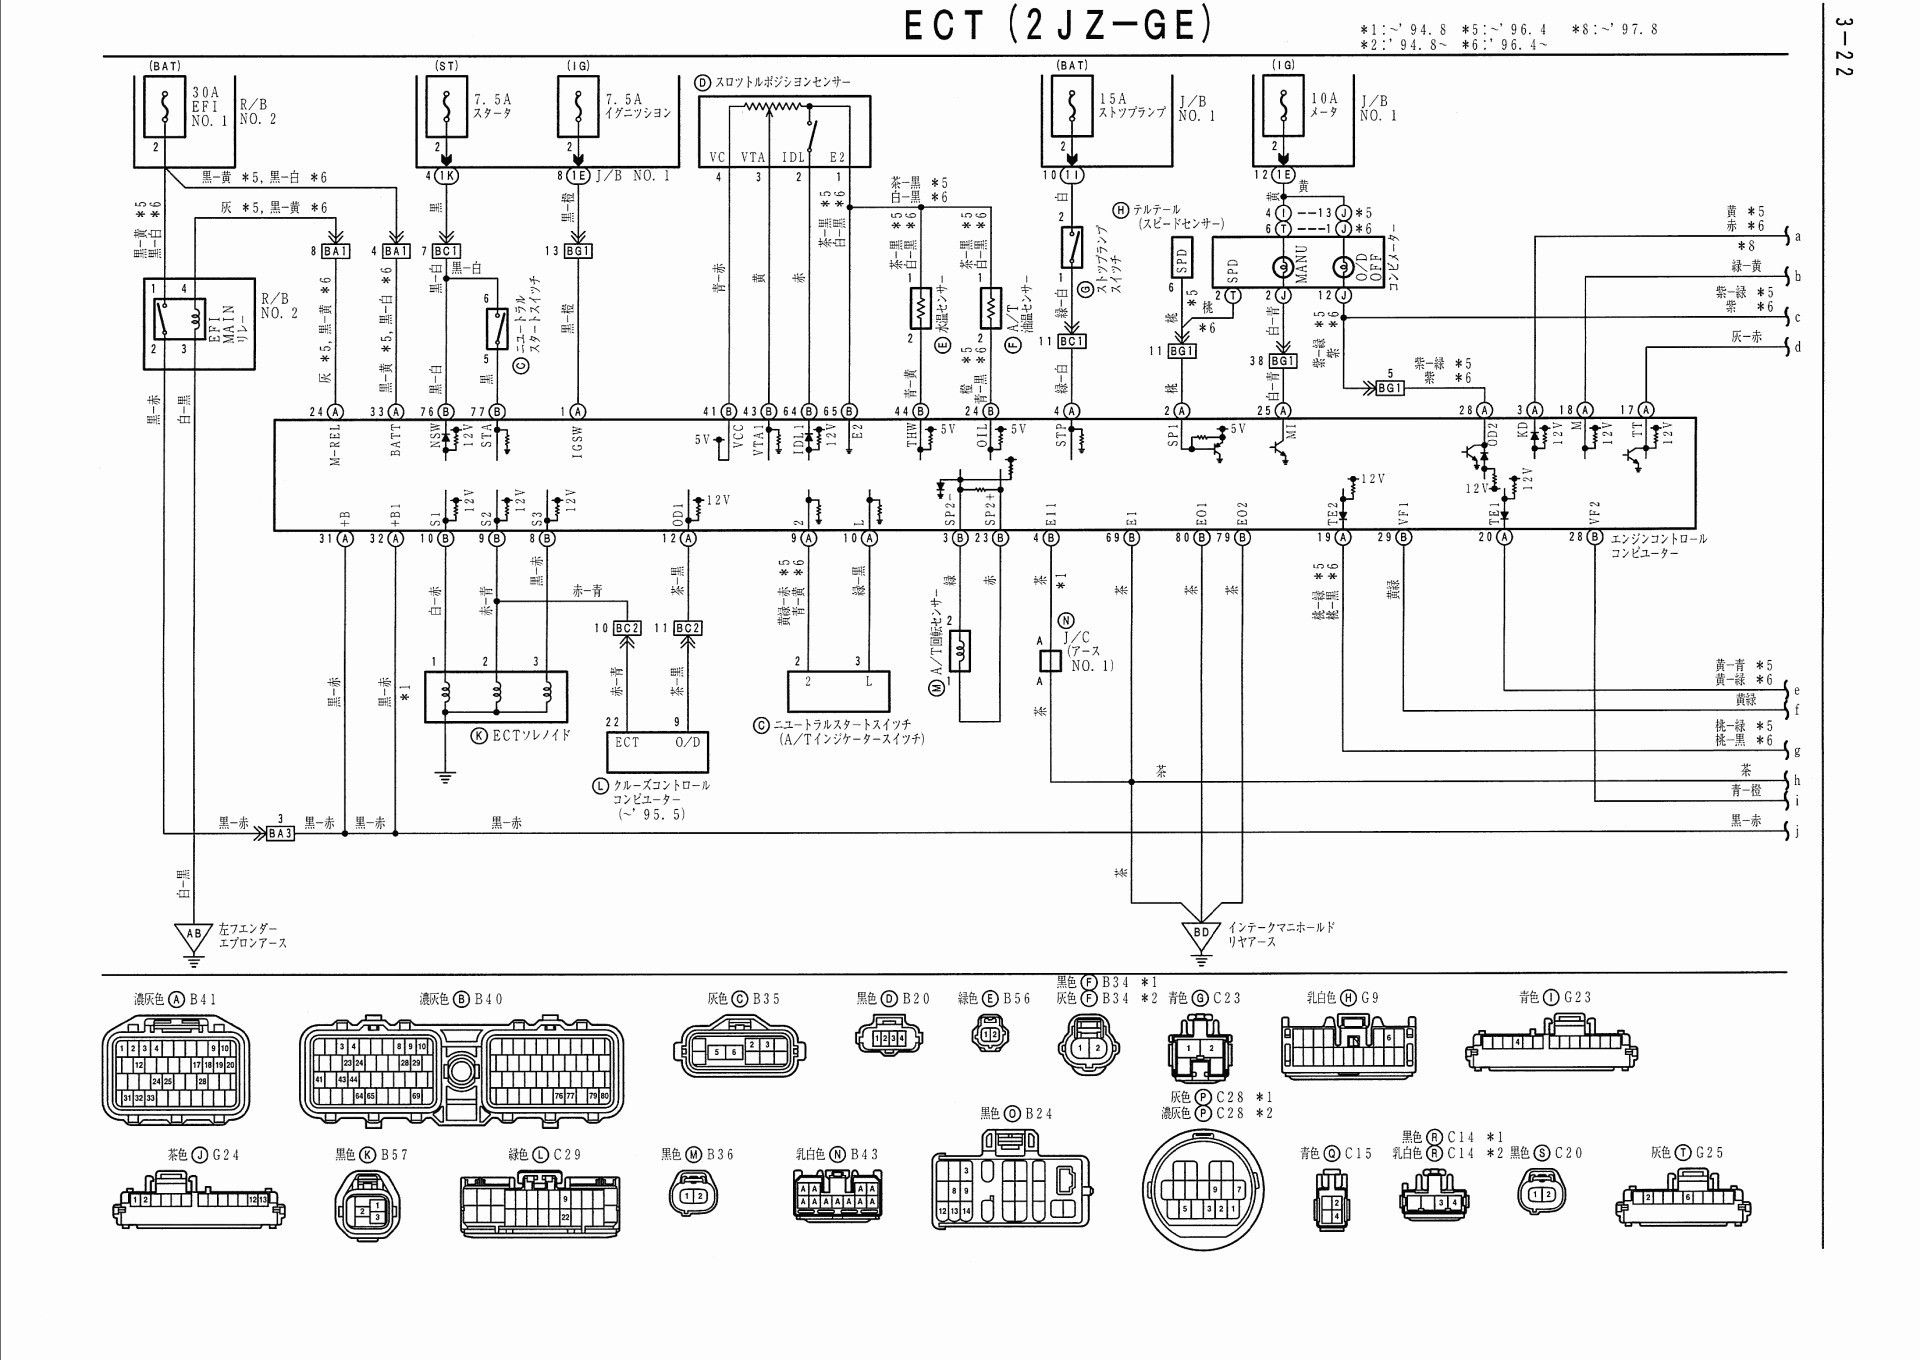 Bmw E46 Obd Wiring Diagram -House Electric Fuse Box Holder | Begeboy Wiring  Diagram SourceBegeboy Wiring Diagram Source